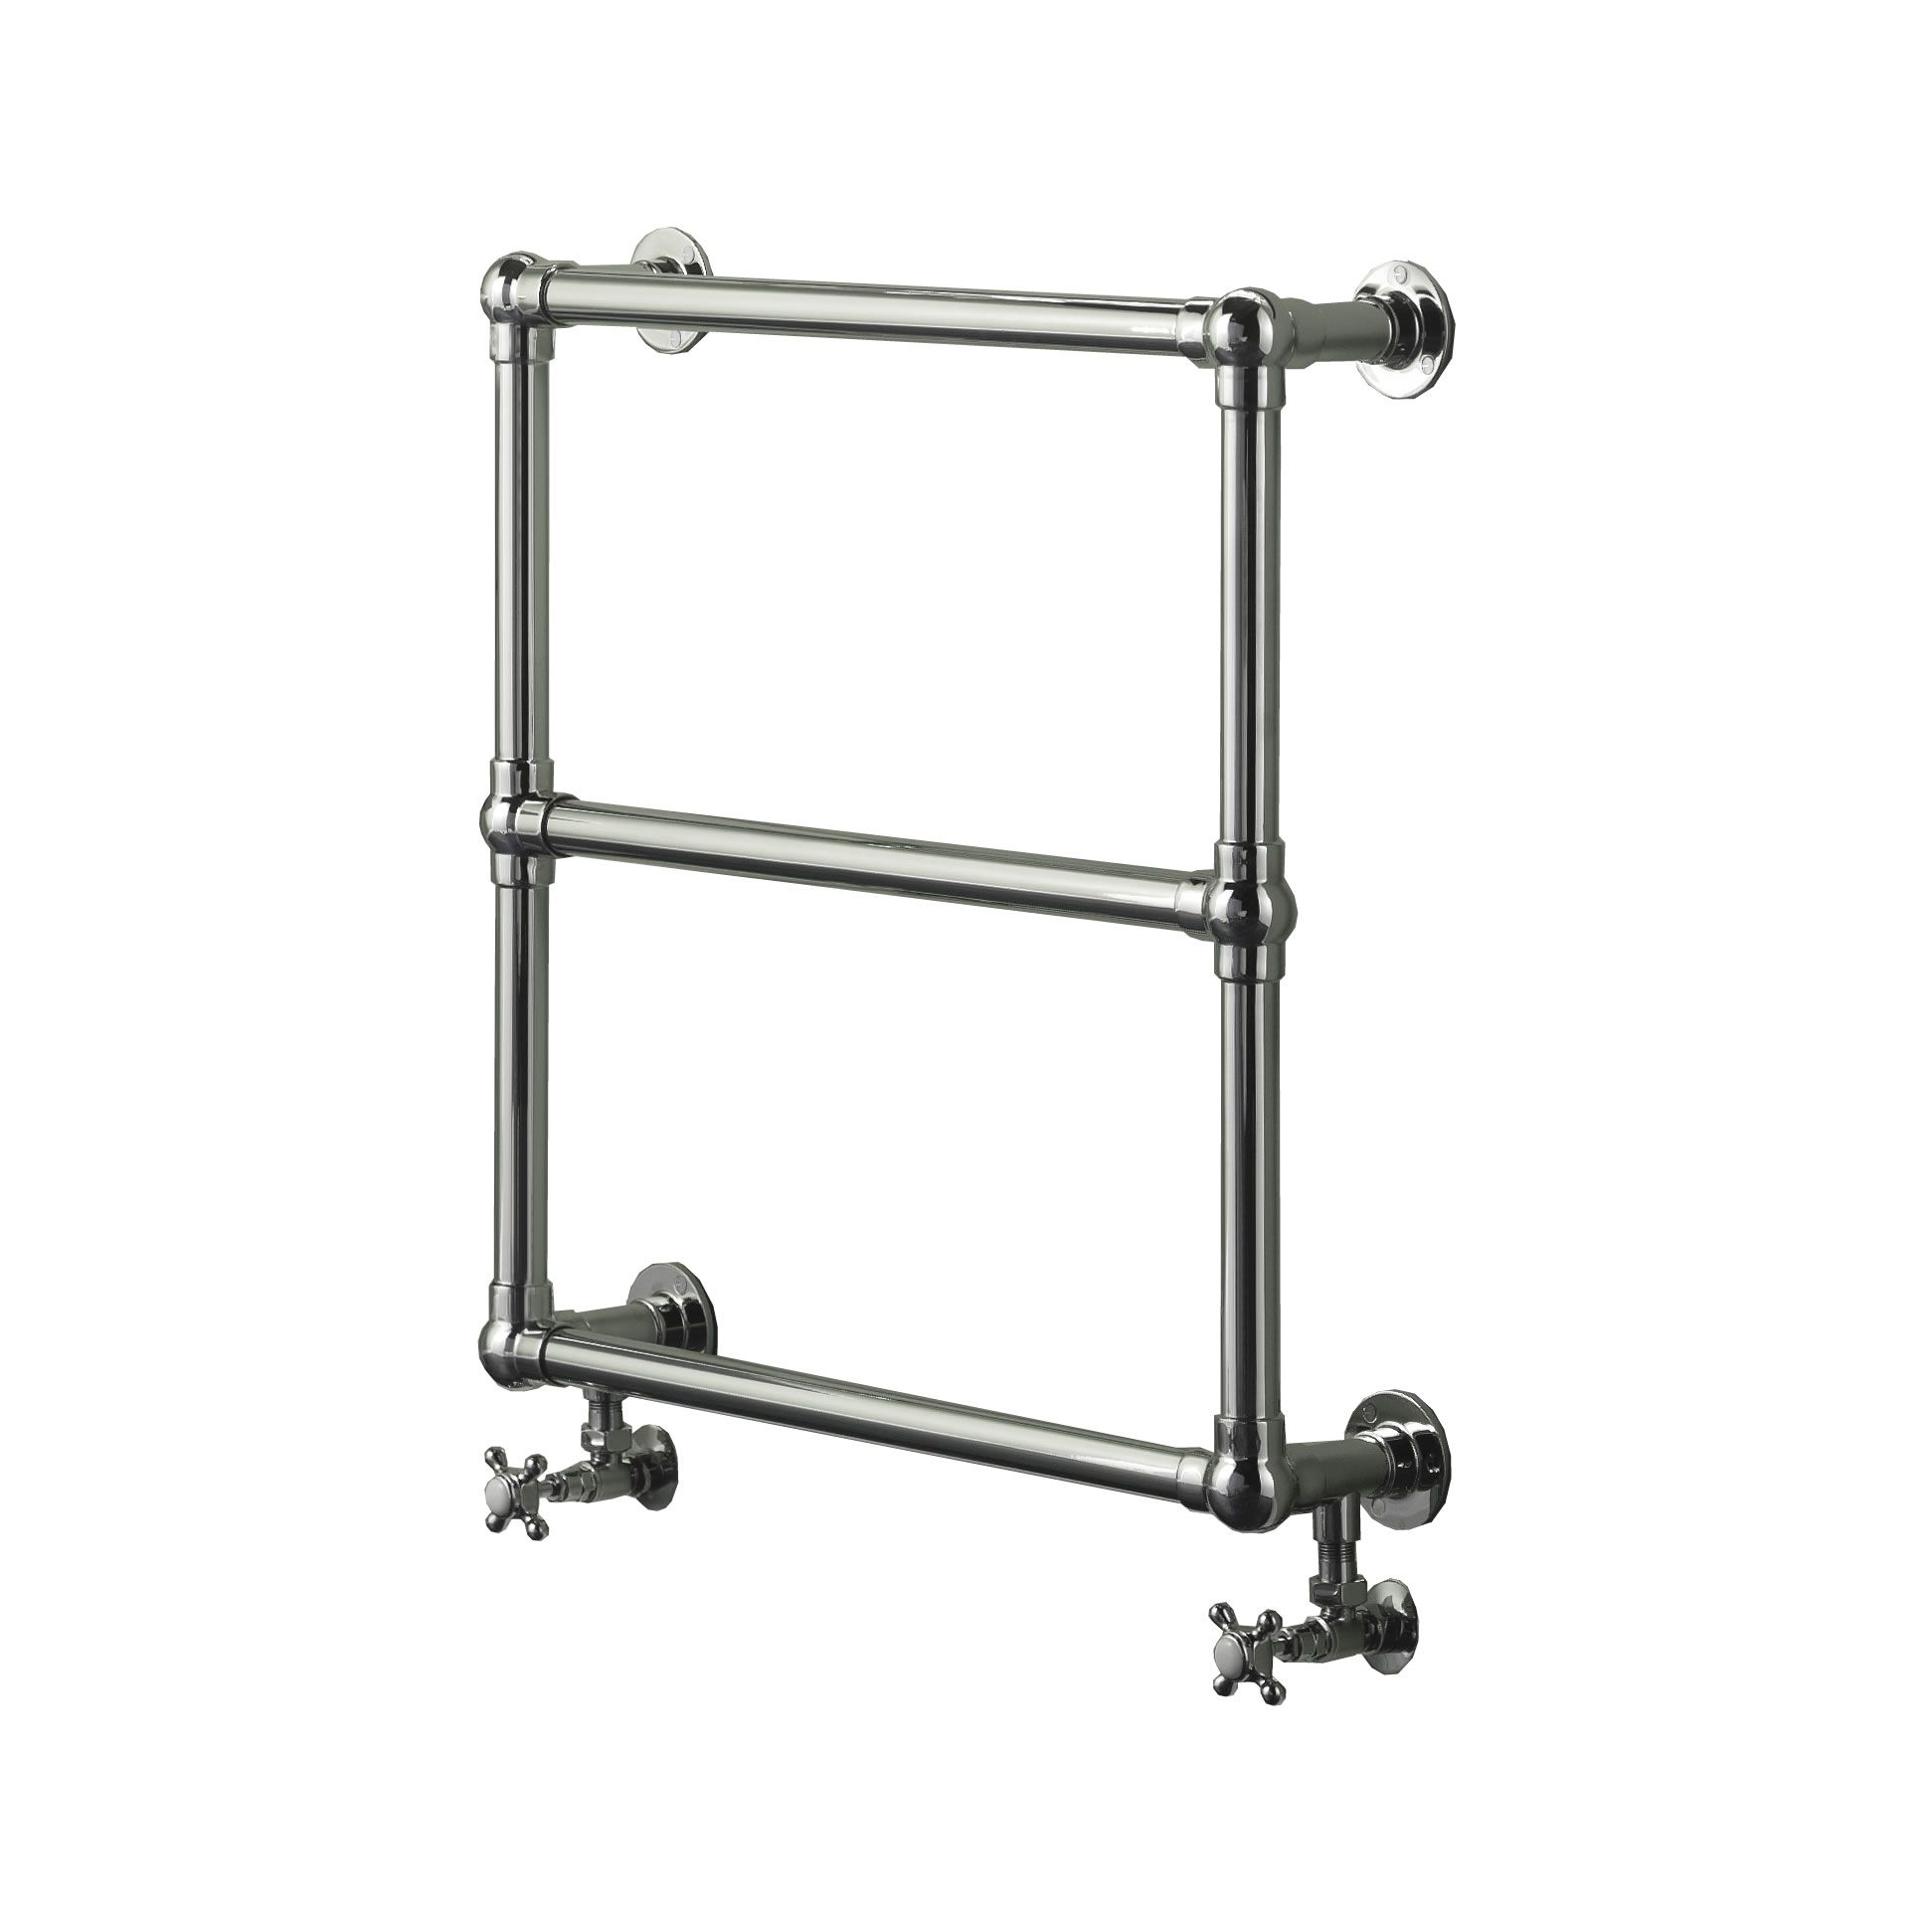 Empress Hydronic Heated Towel Warmer - Chrome Finish